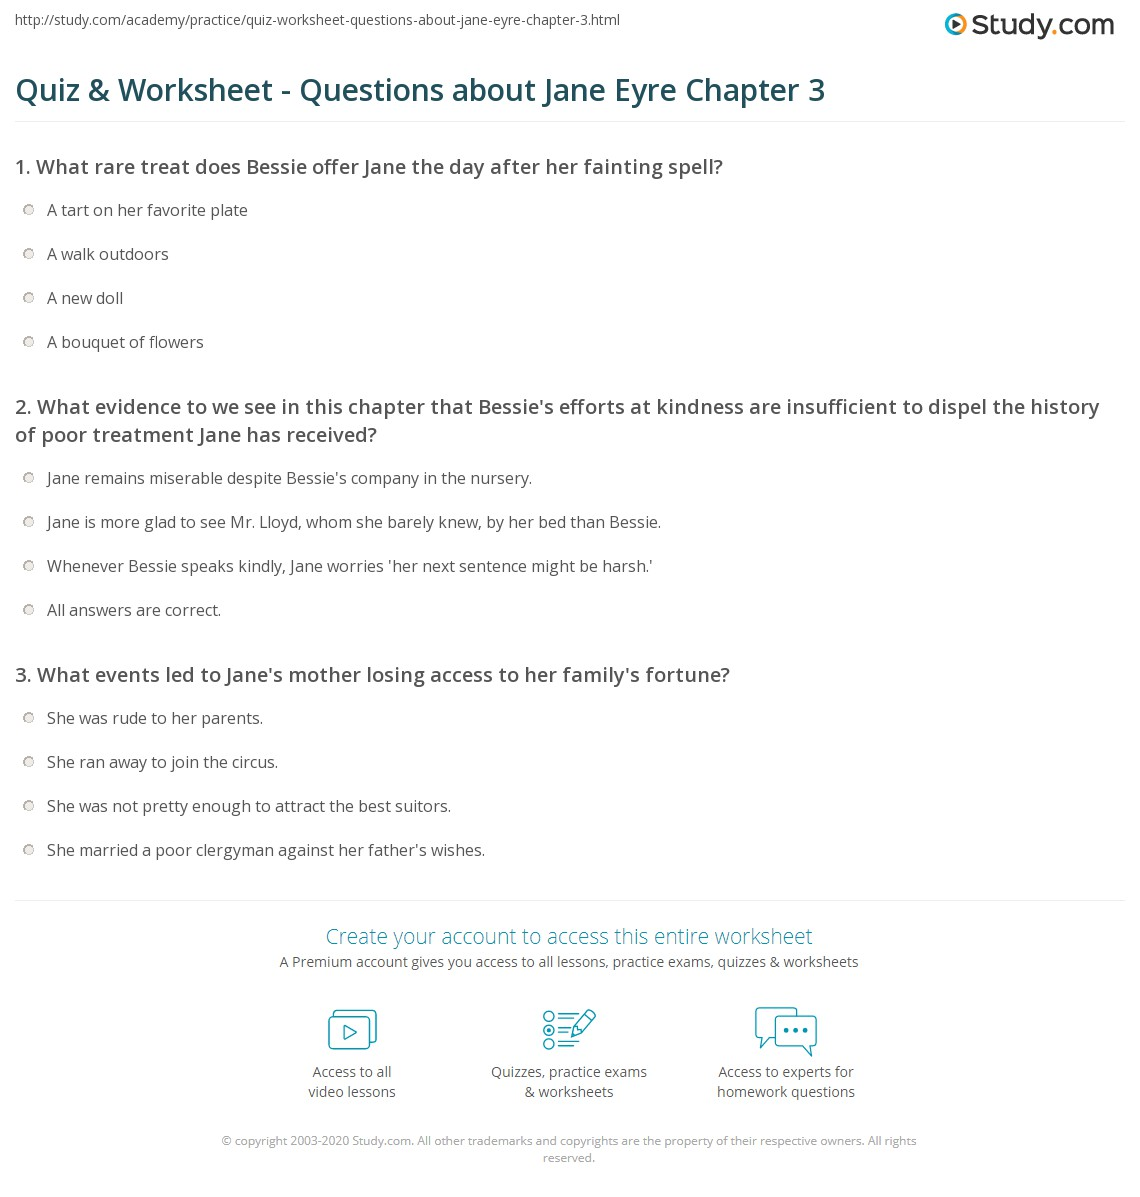 quiz worksheet questions about jane eyre chapter 3 study com rh study com Jane Eyre Movie Poster Jane Eyre Movie